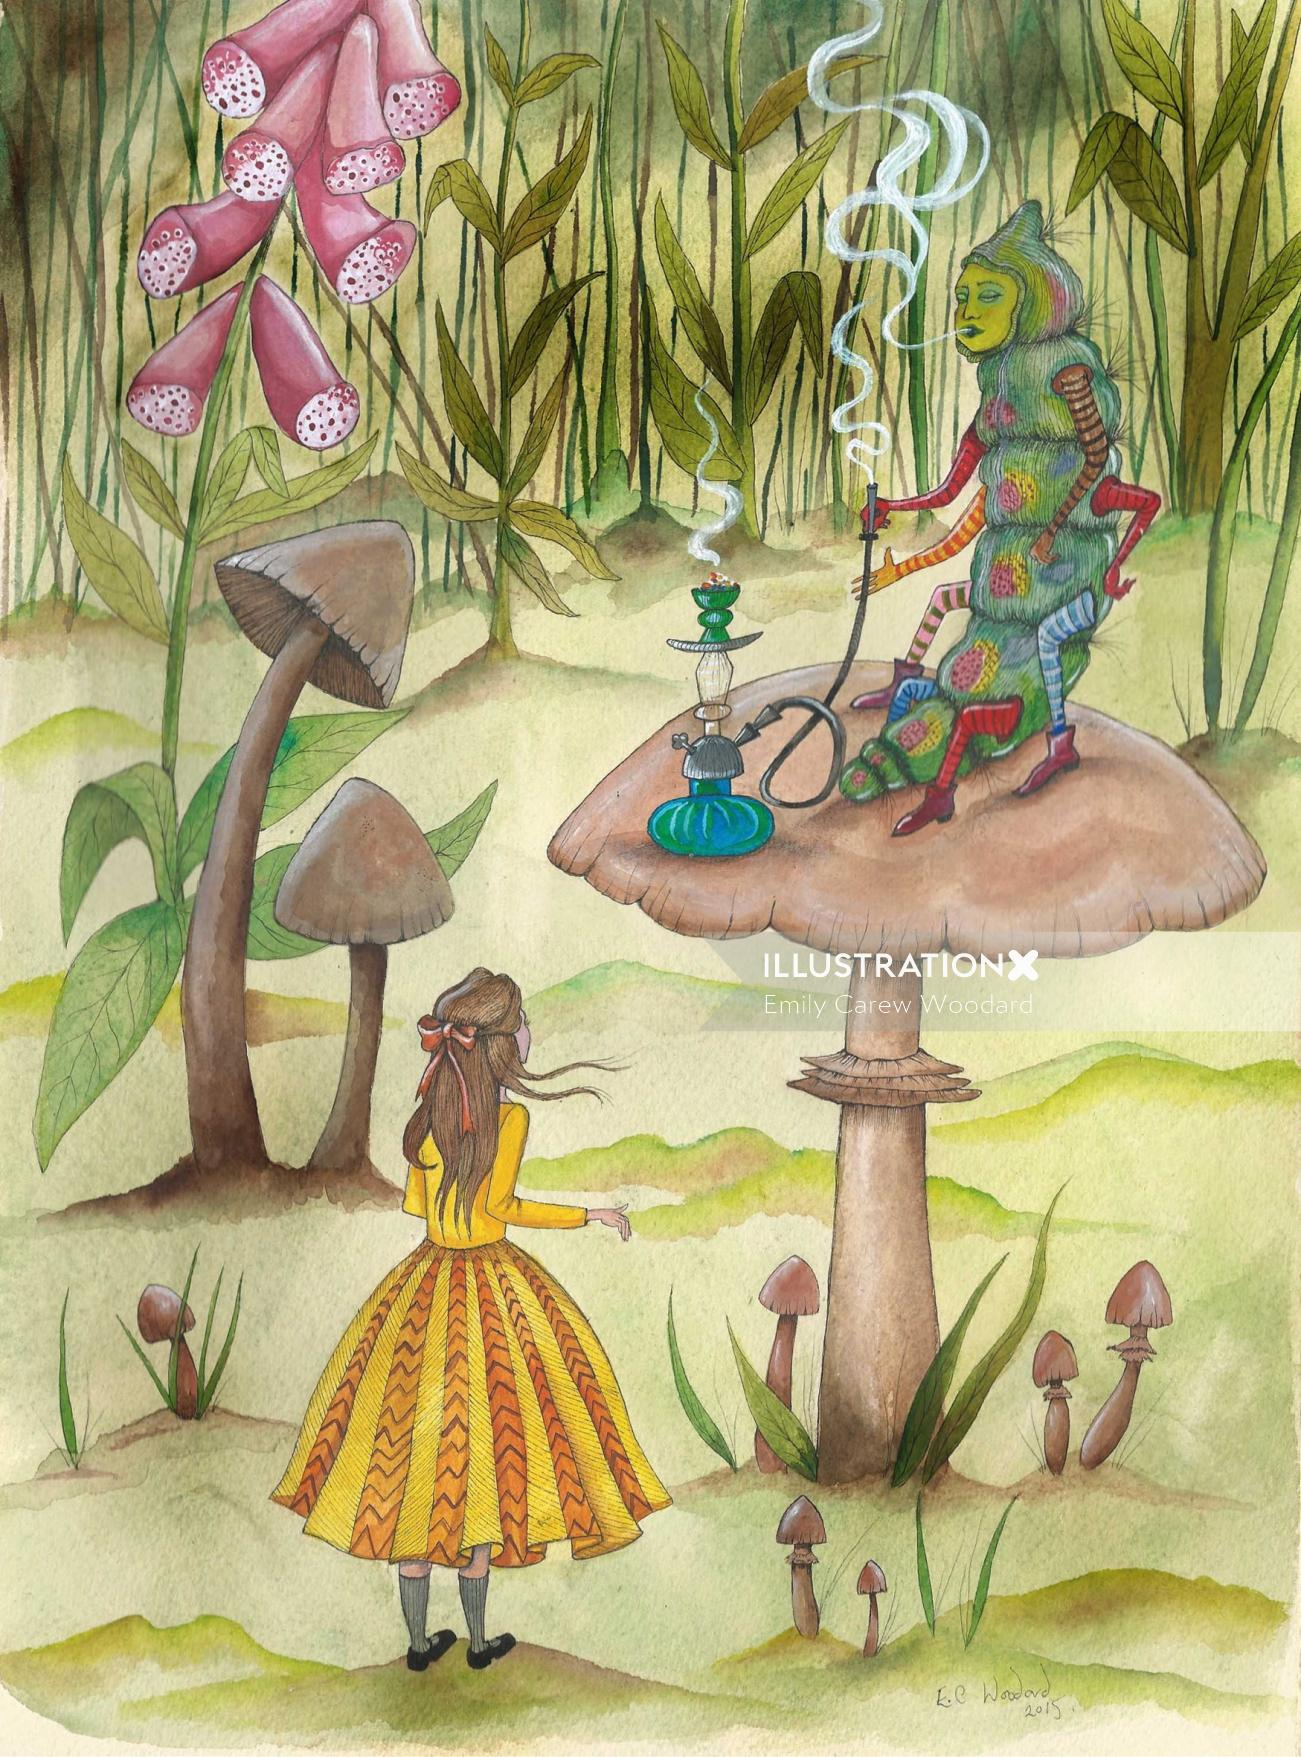 An illustration of a girl and caterpillar in human character